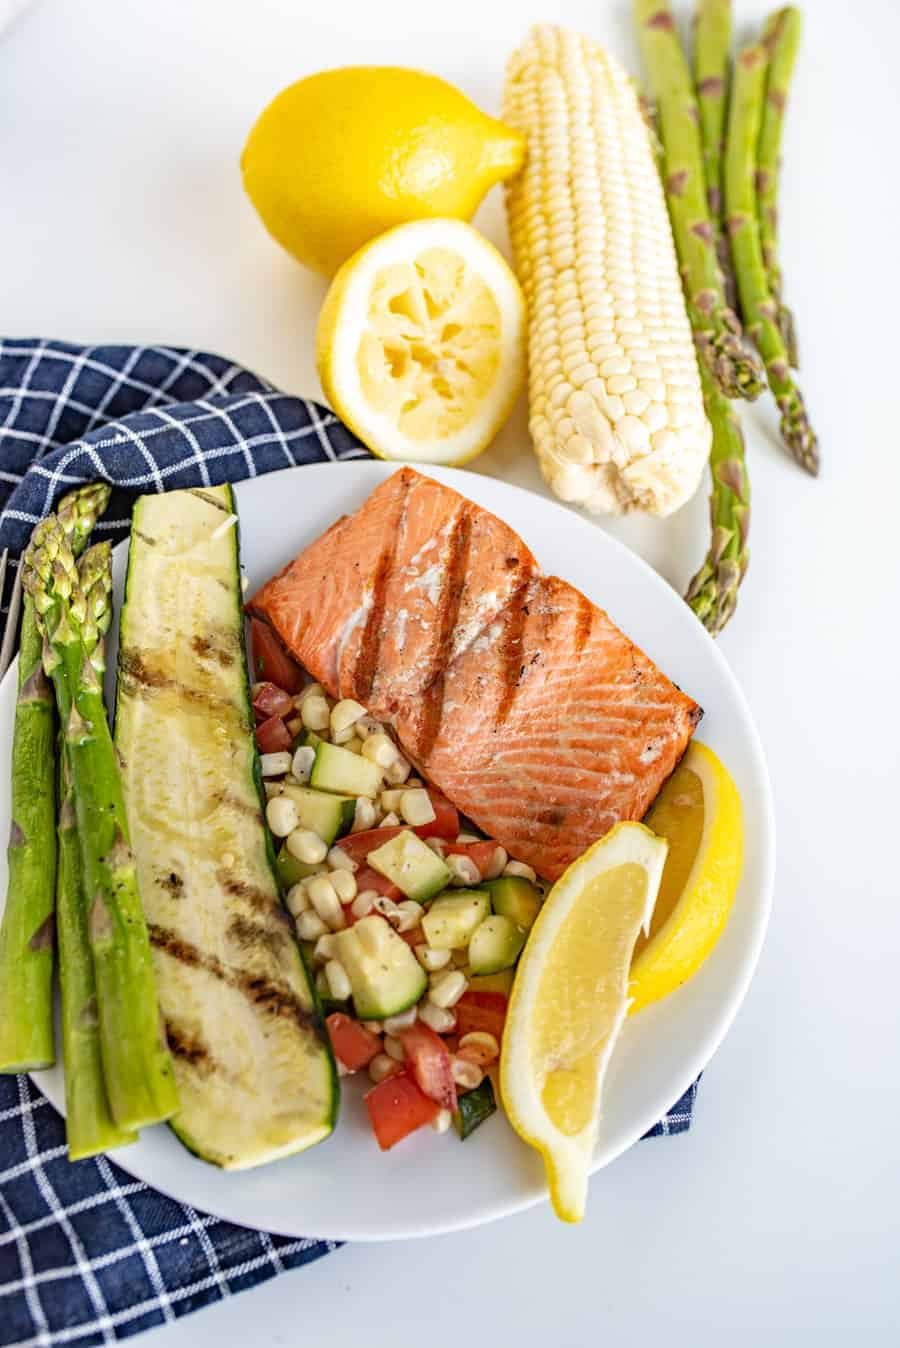 This Easy Grilled Salmon Recipe is perfect for grill novices to learn how to grill salmon. It's flakey, lemony, and salty in all the best ways, and comes together with little time or effort!